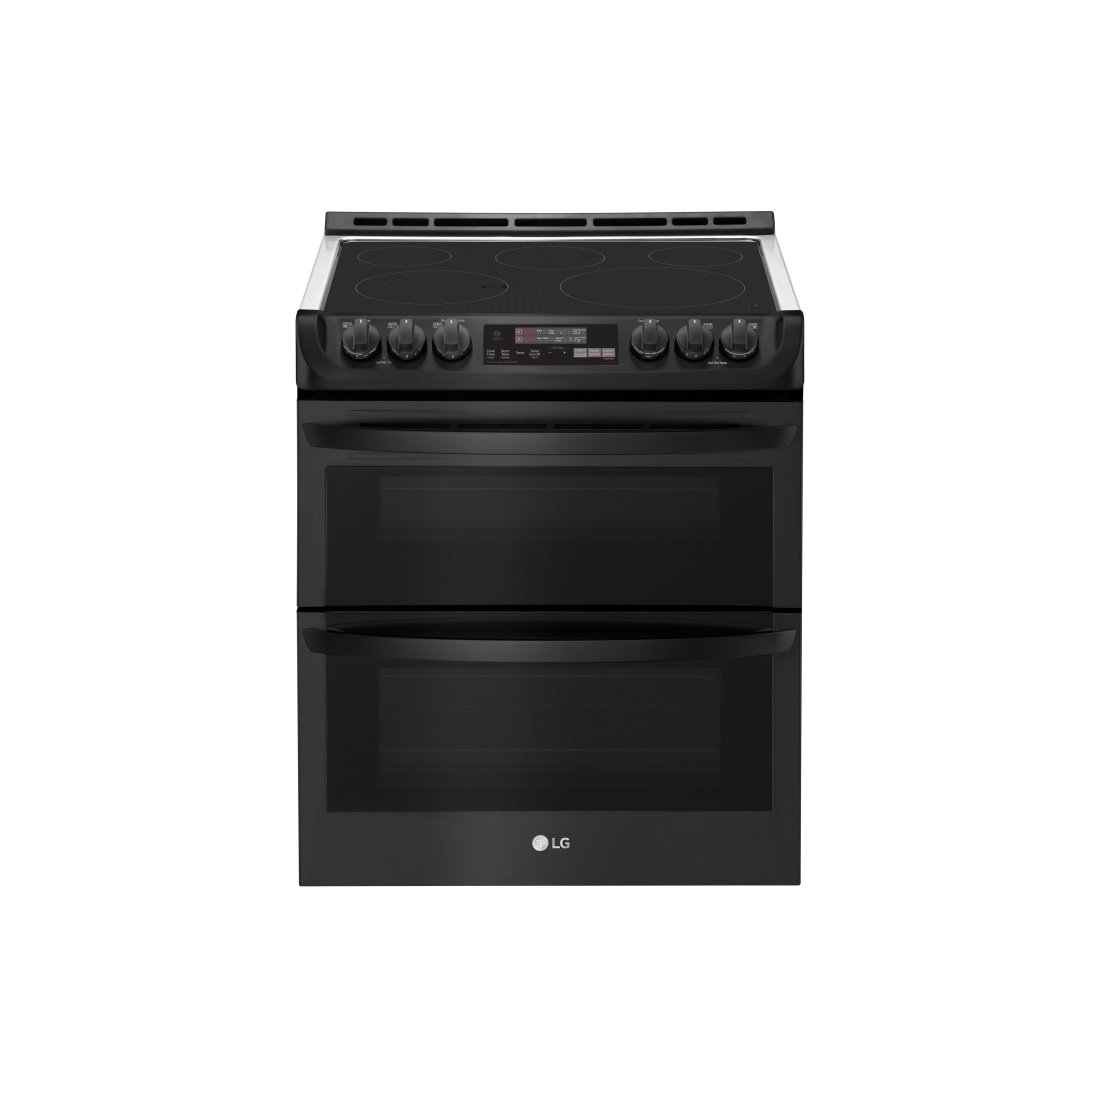 Smart Wifi Enabled Electric Double Oven Slide In Range With Probake Convection And Easyclean Matte Black Stainless Steel Rc Willey Furniture